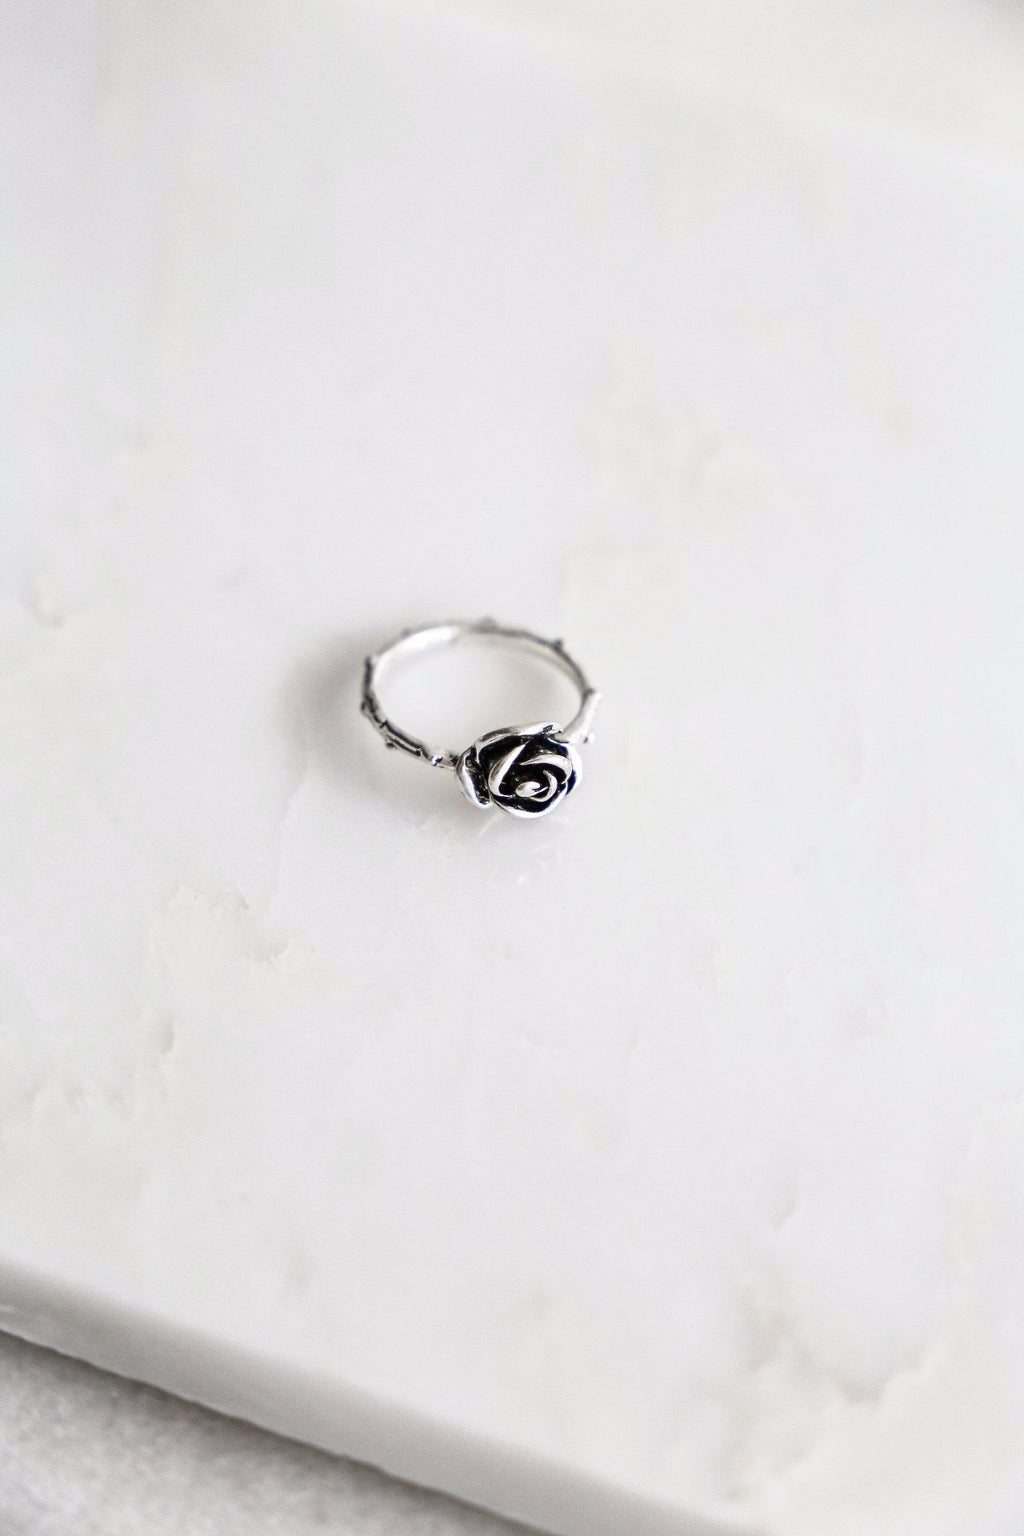 Rose & Spikes Ring - Boutique Minimaliste